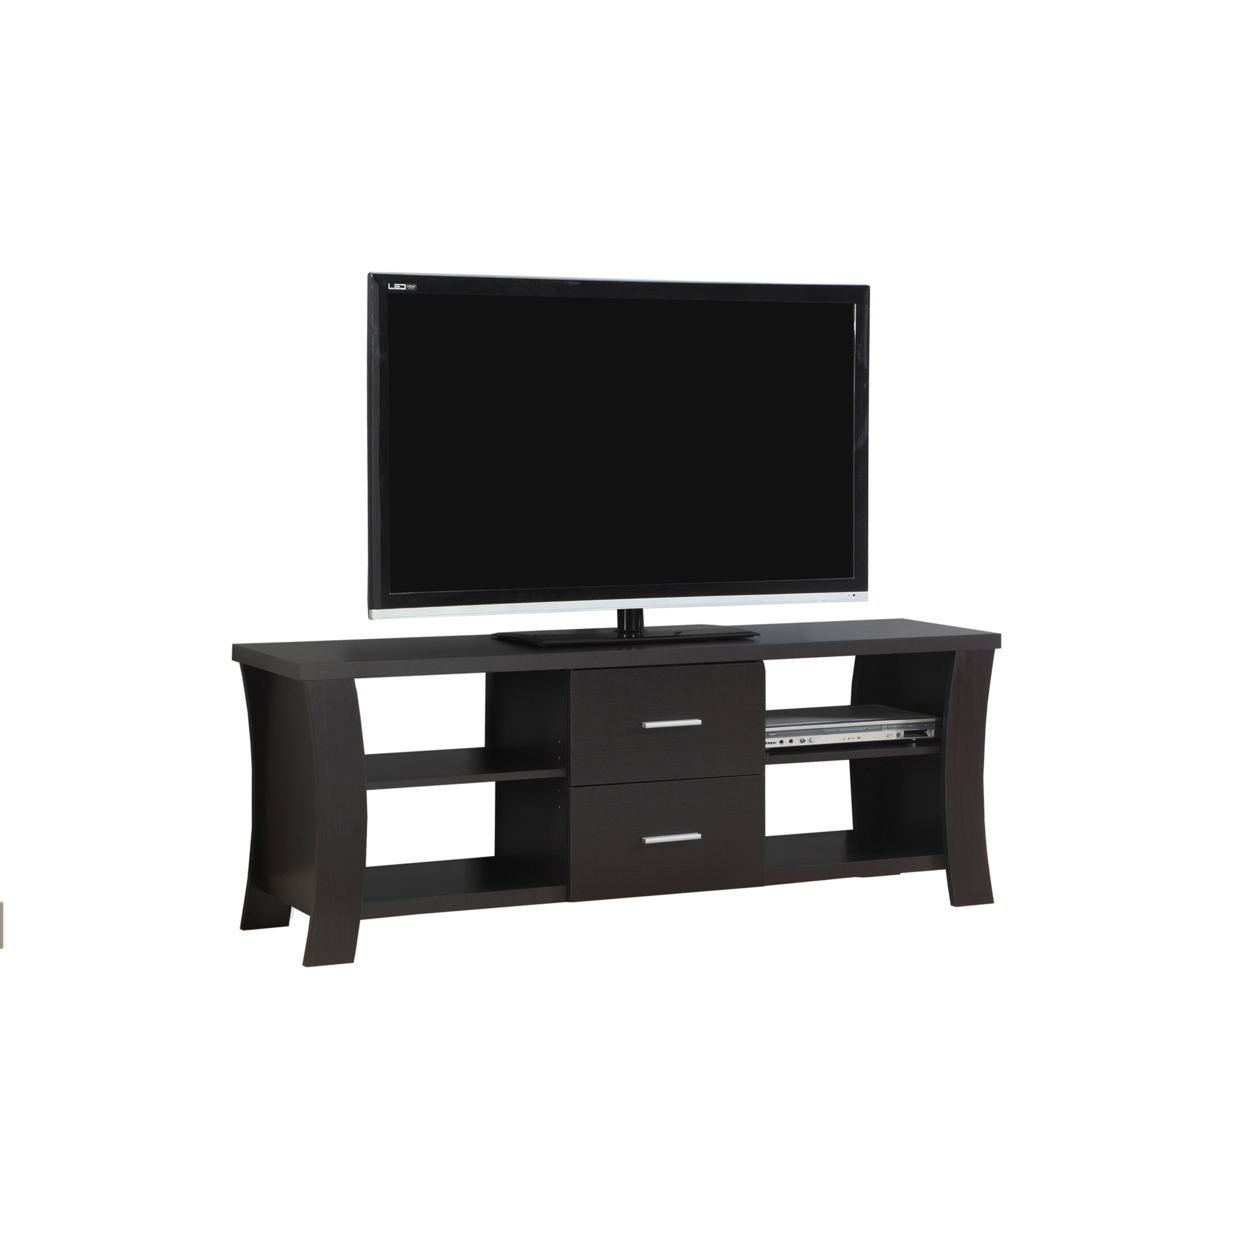 "TV Stand - 60""l, Cappuccino With 2 Drawers, 2683 5a5461f22a00e41a3d4fa5d6"